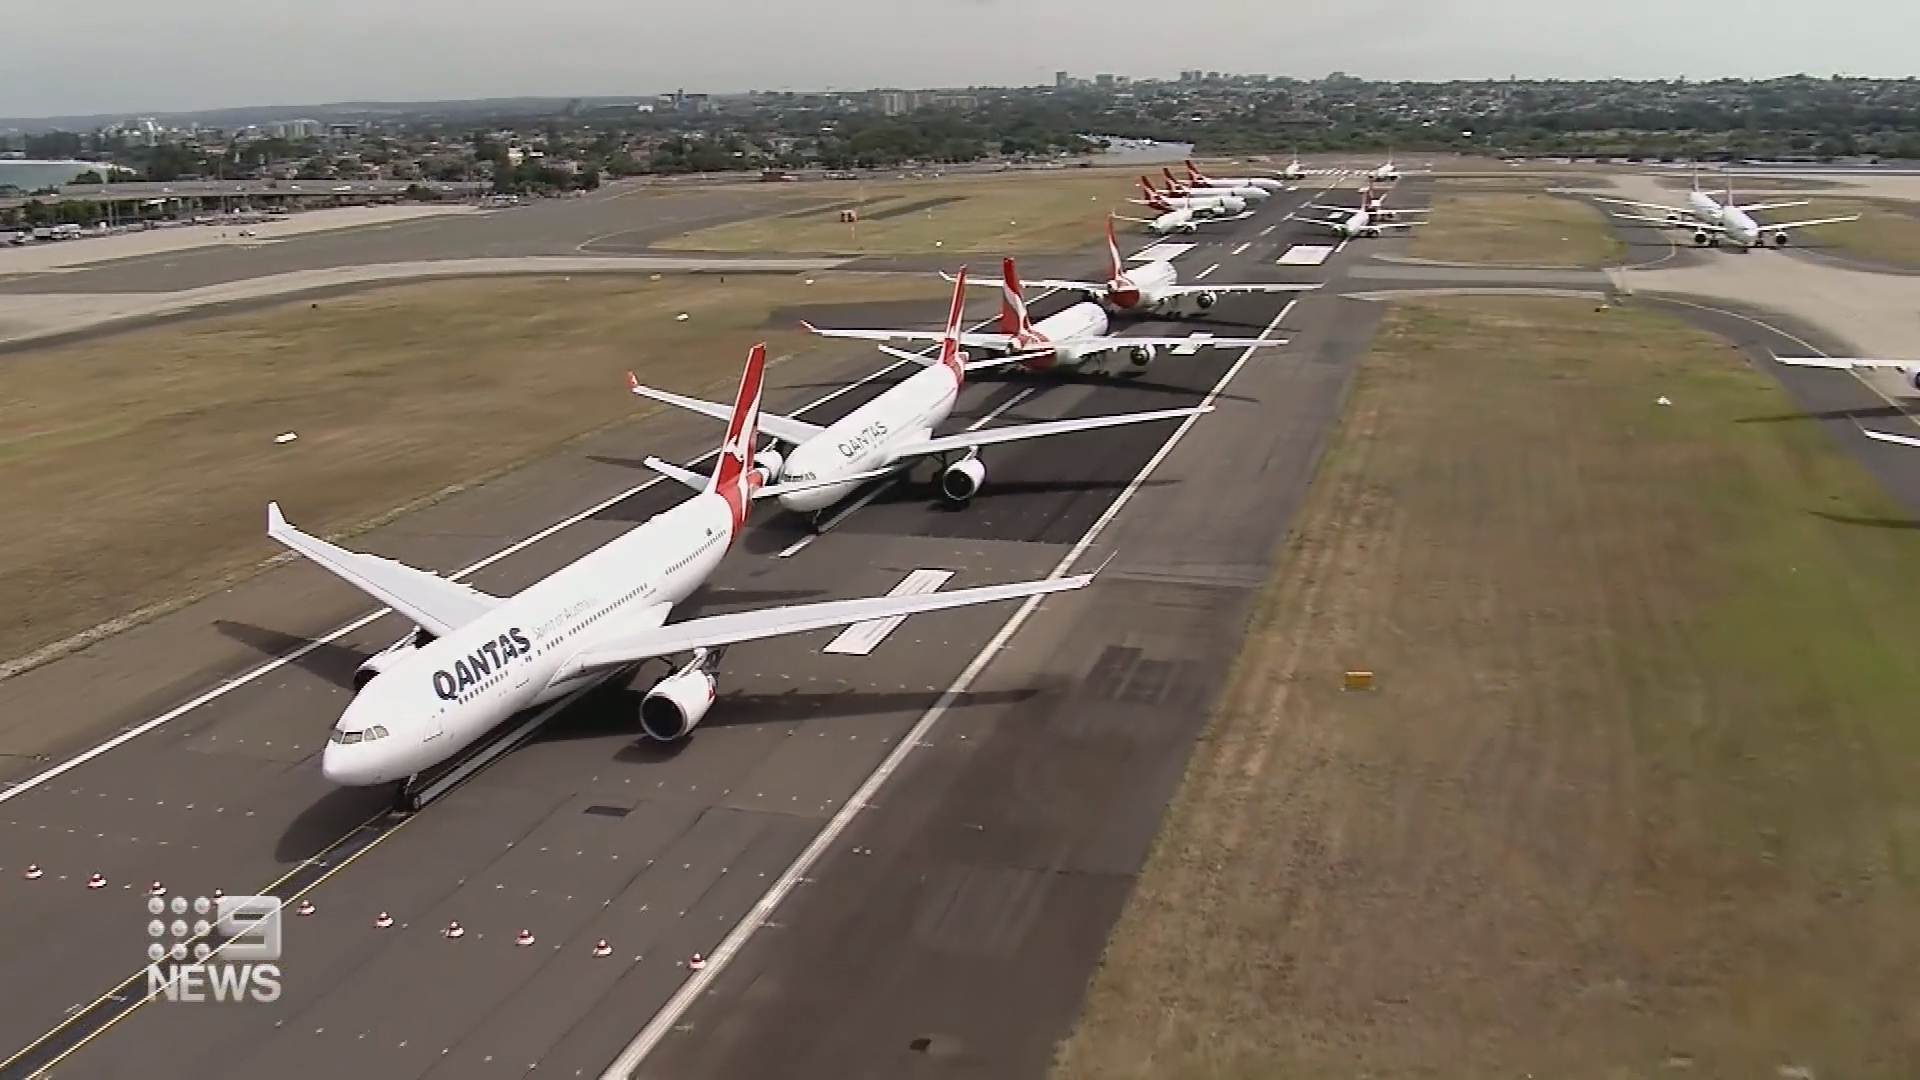 Qantas hopes to resume international flights in October